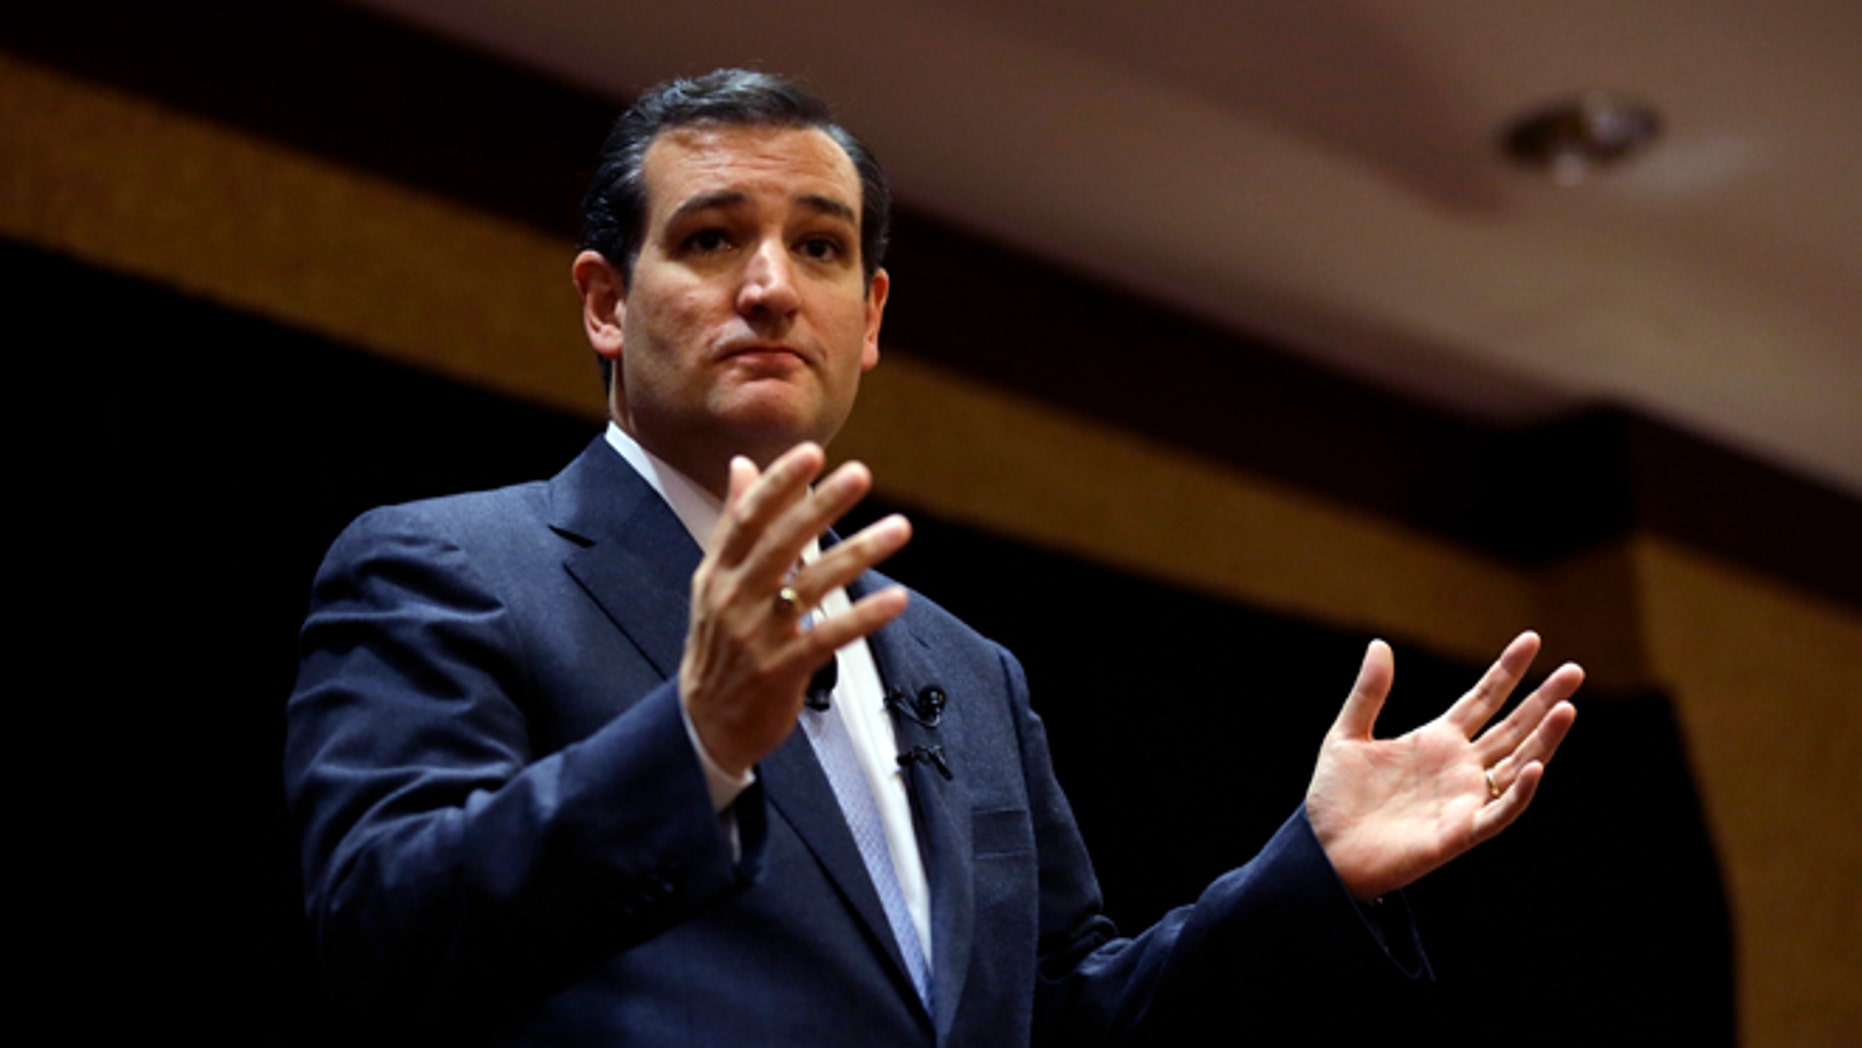 Mar. 18, 2014: Sen. Ted Cruz, R-Texas, speaks at the Network of Iowa Christian Home Educatorsâ state Capitol day event in Des Moines, Iowa.